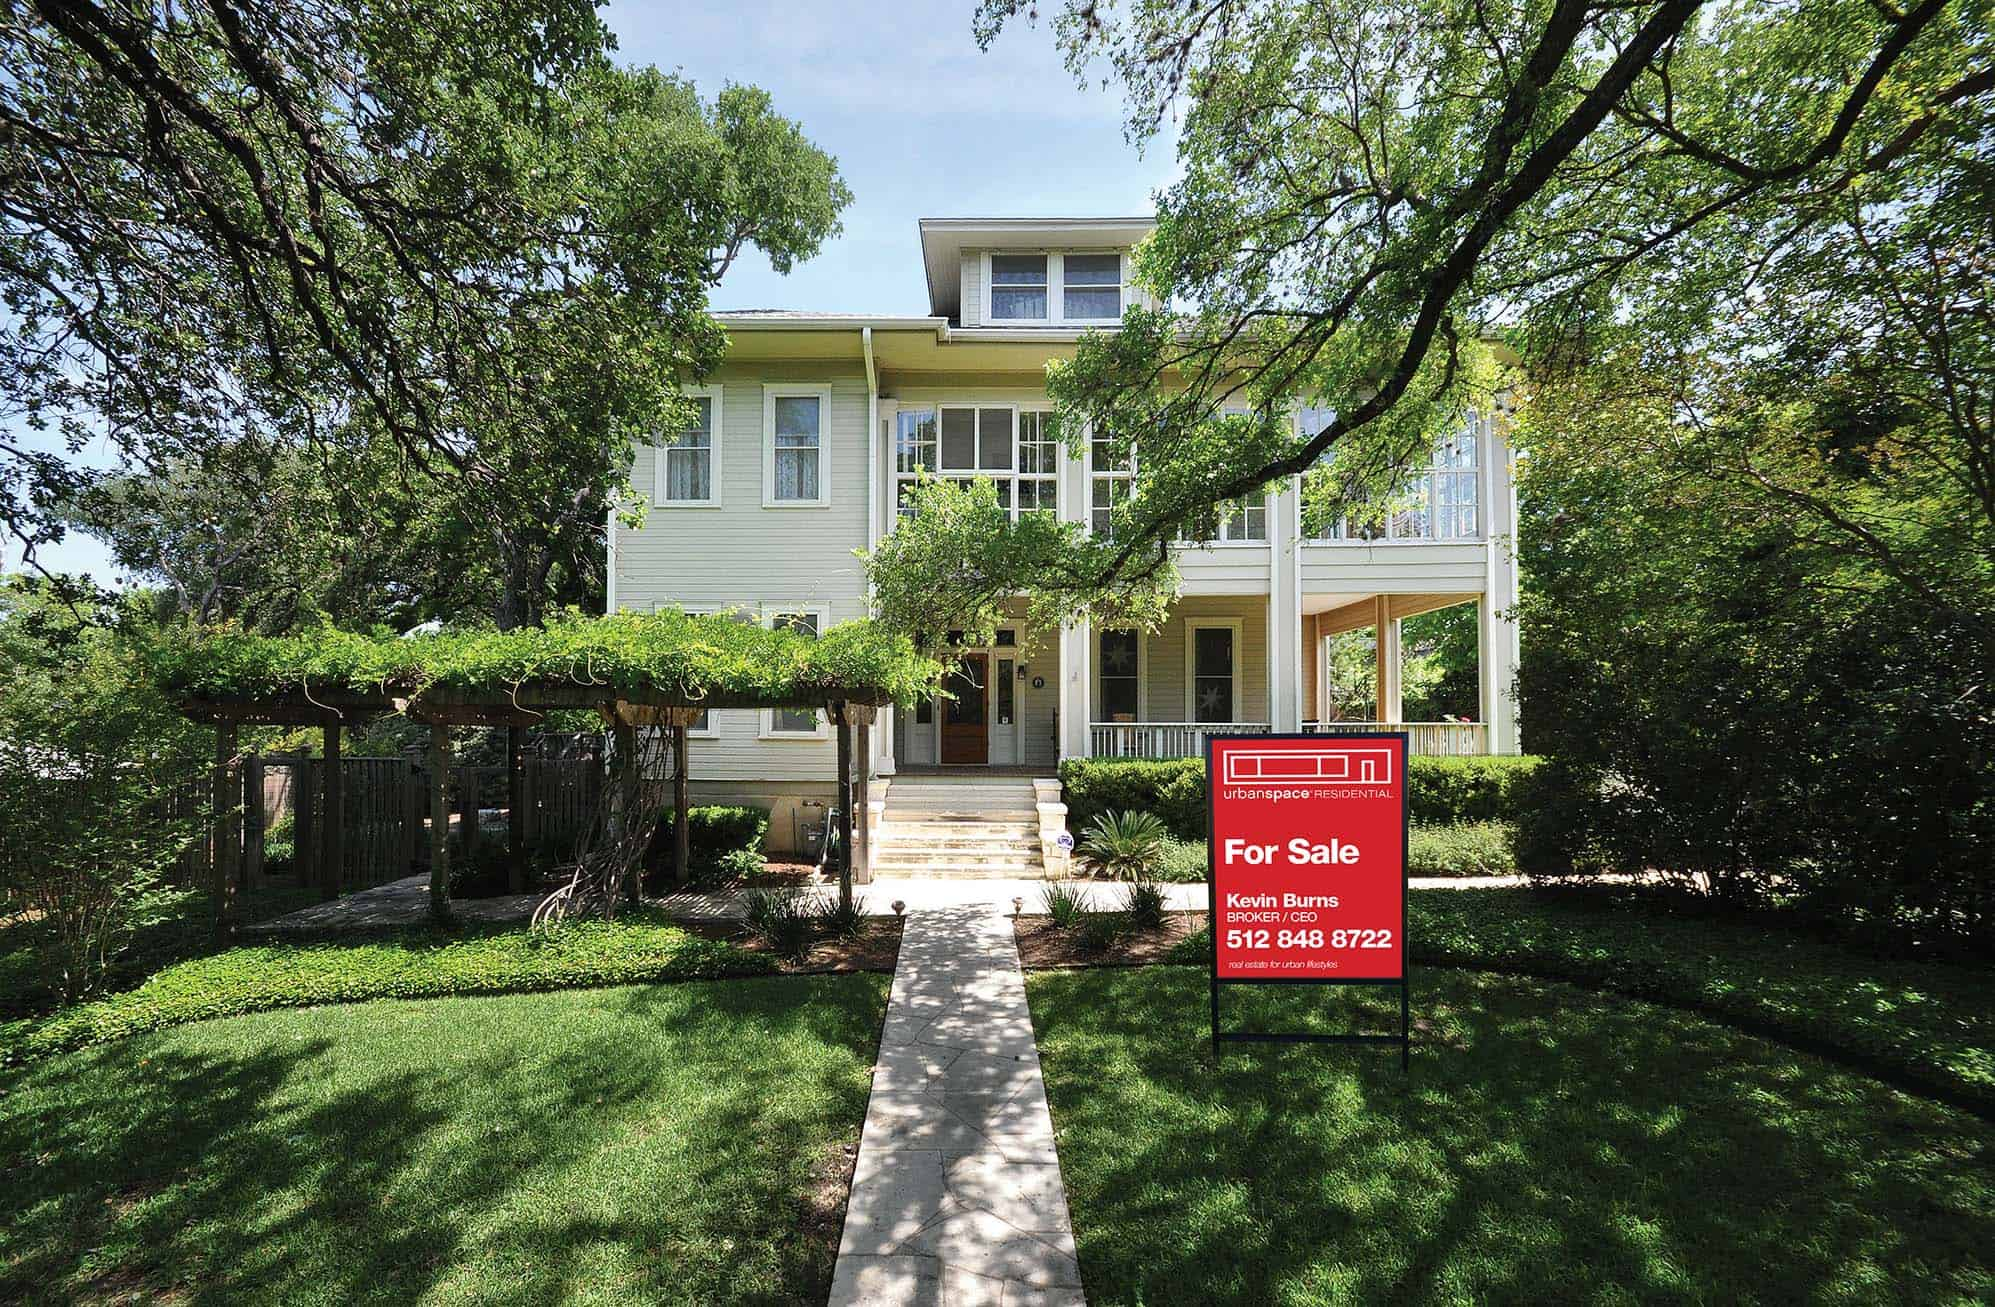 house exterior with for sale sign in yard urbanspace realtors austin